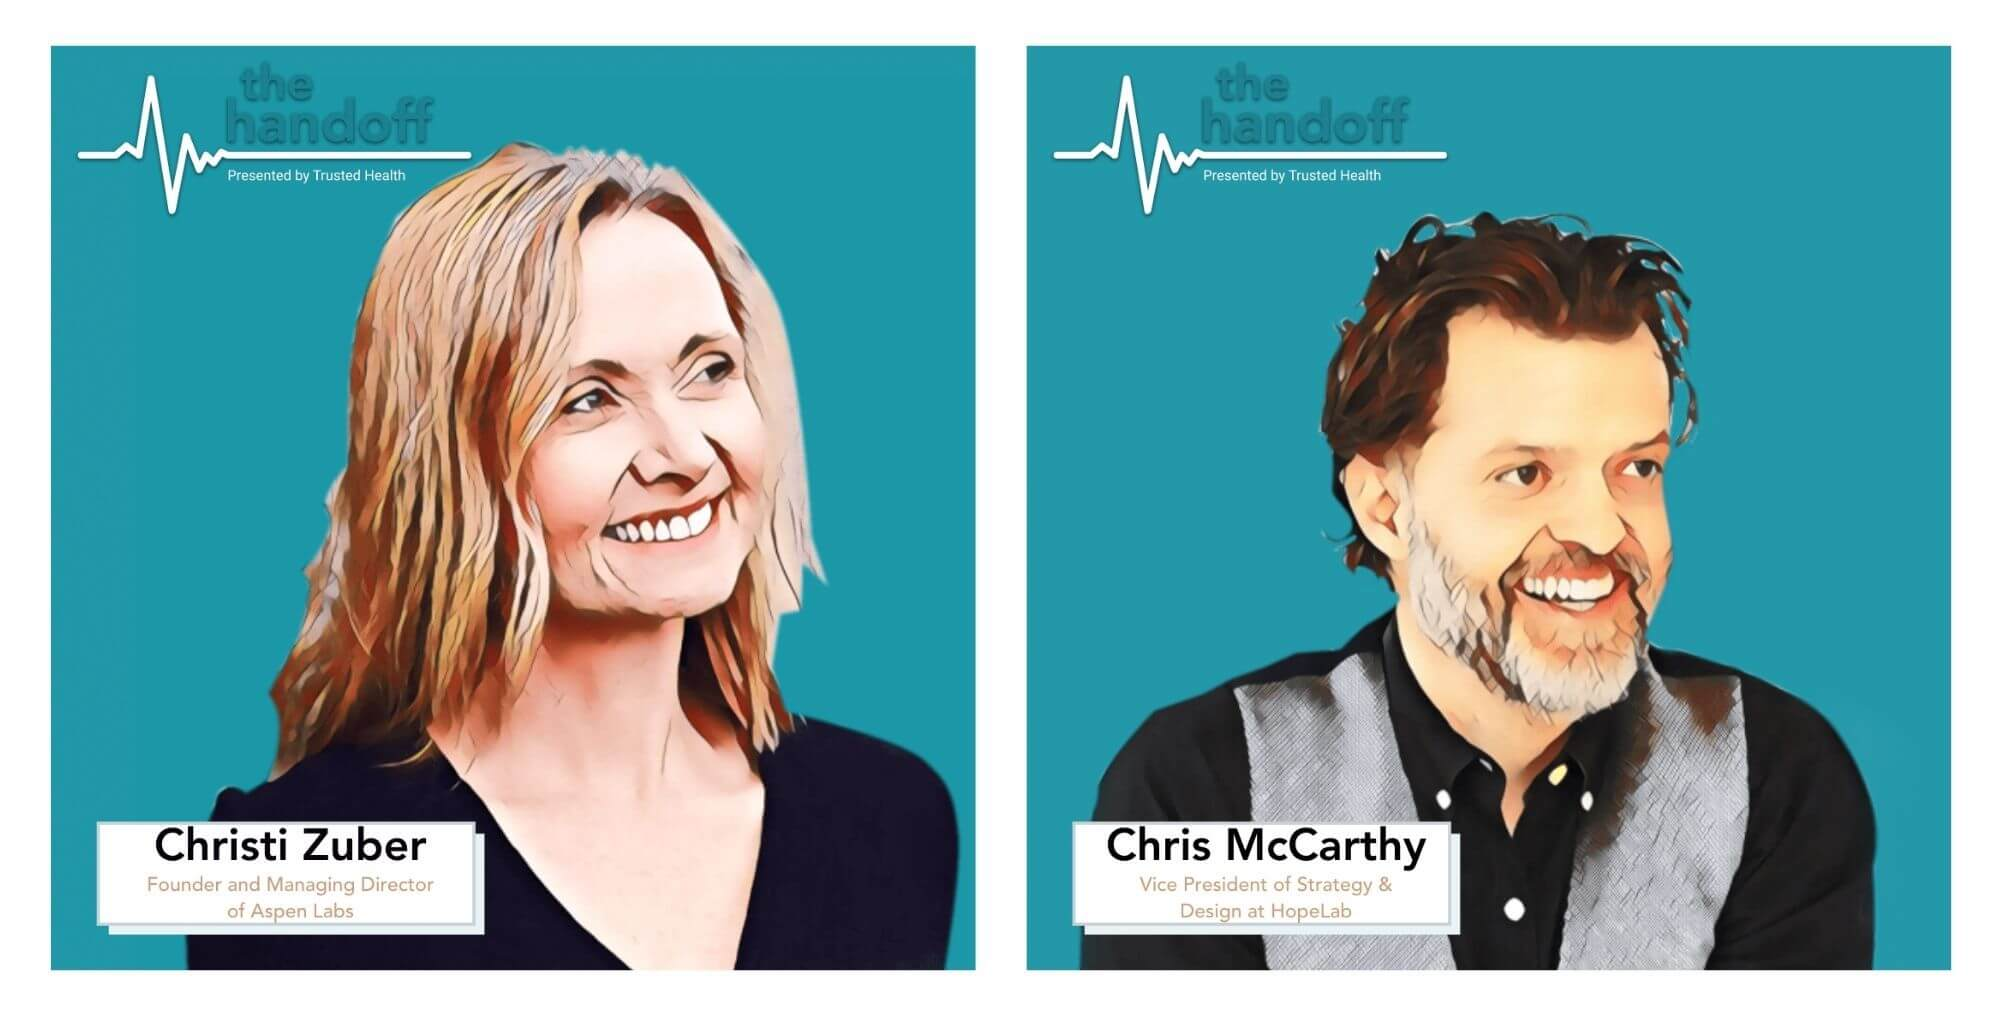 christi zuber founder of aspen labs chris mccarthy VP of strategy and design at hopelab trusted health the handoff podcast